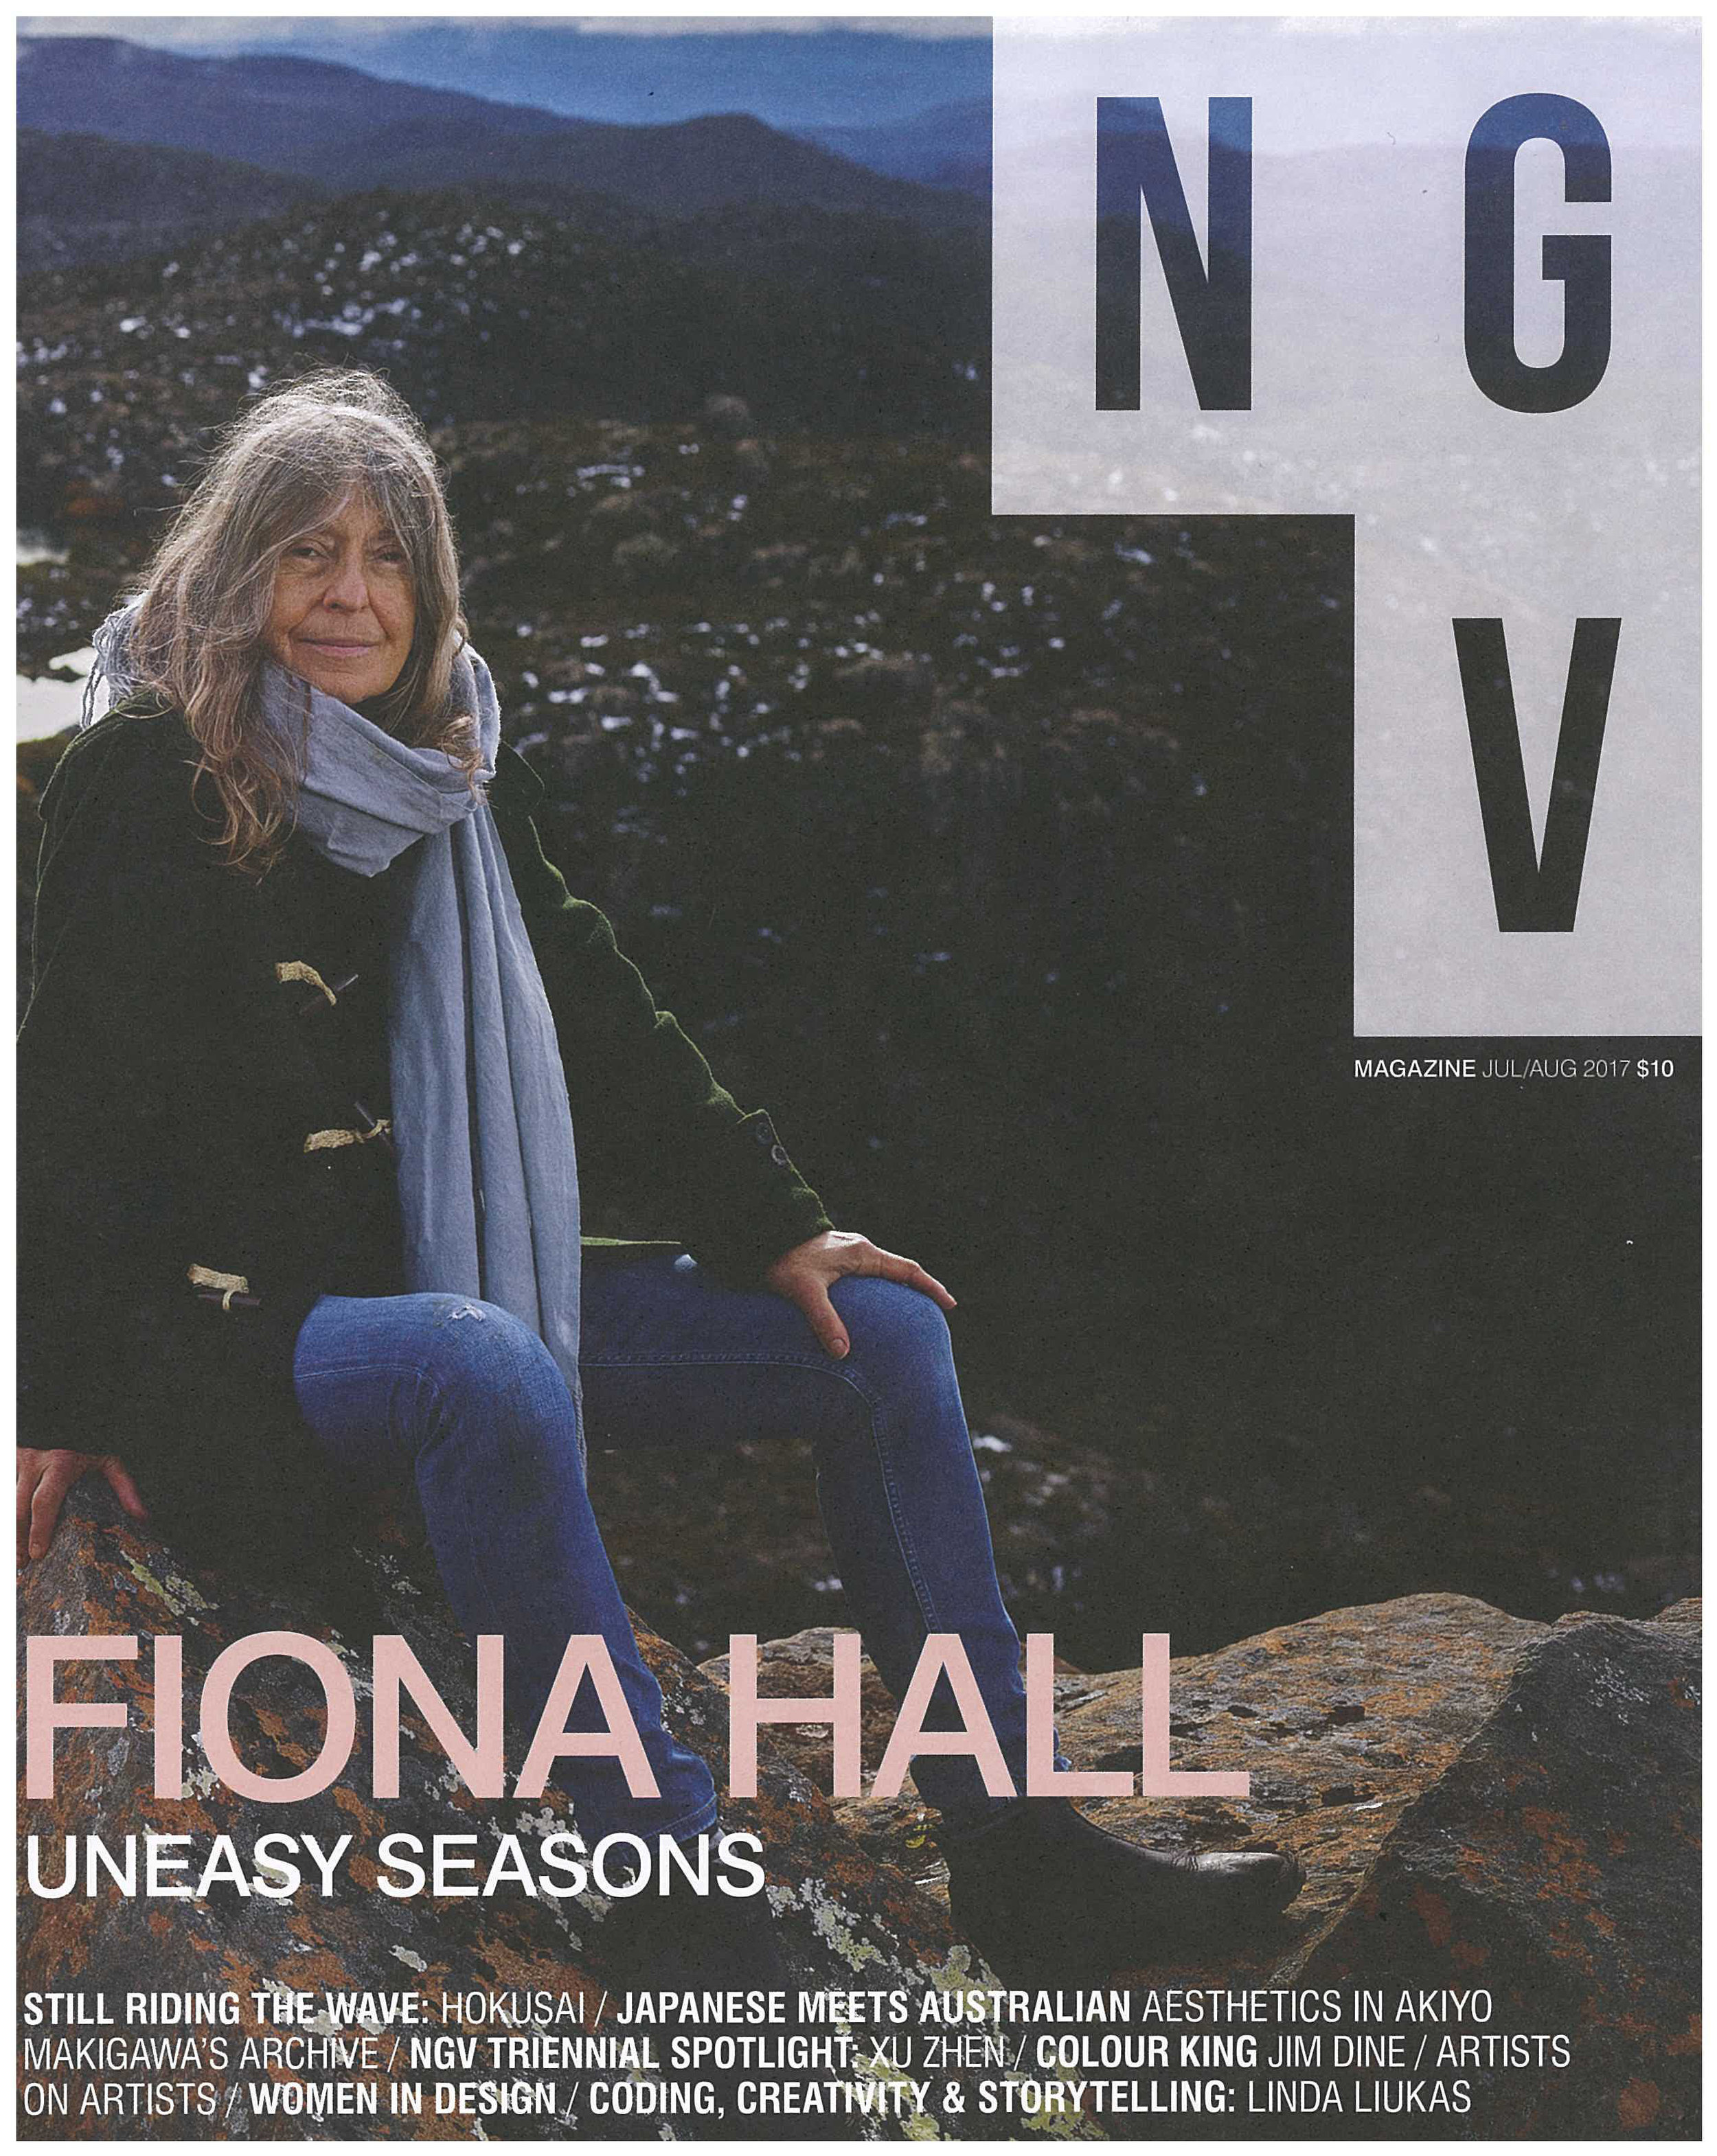 MY NGV National Gallery of Victoria,Magazine Greta Voller July/Aug Issue, p 78 - 81